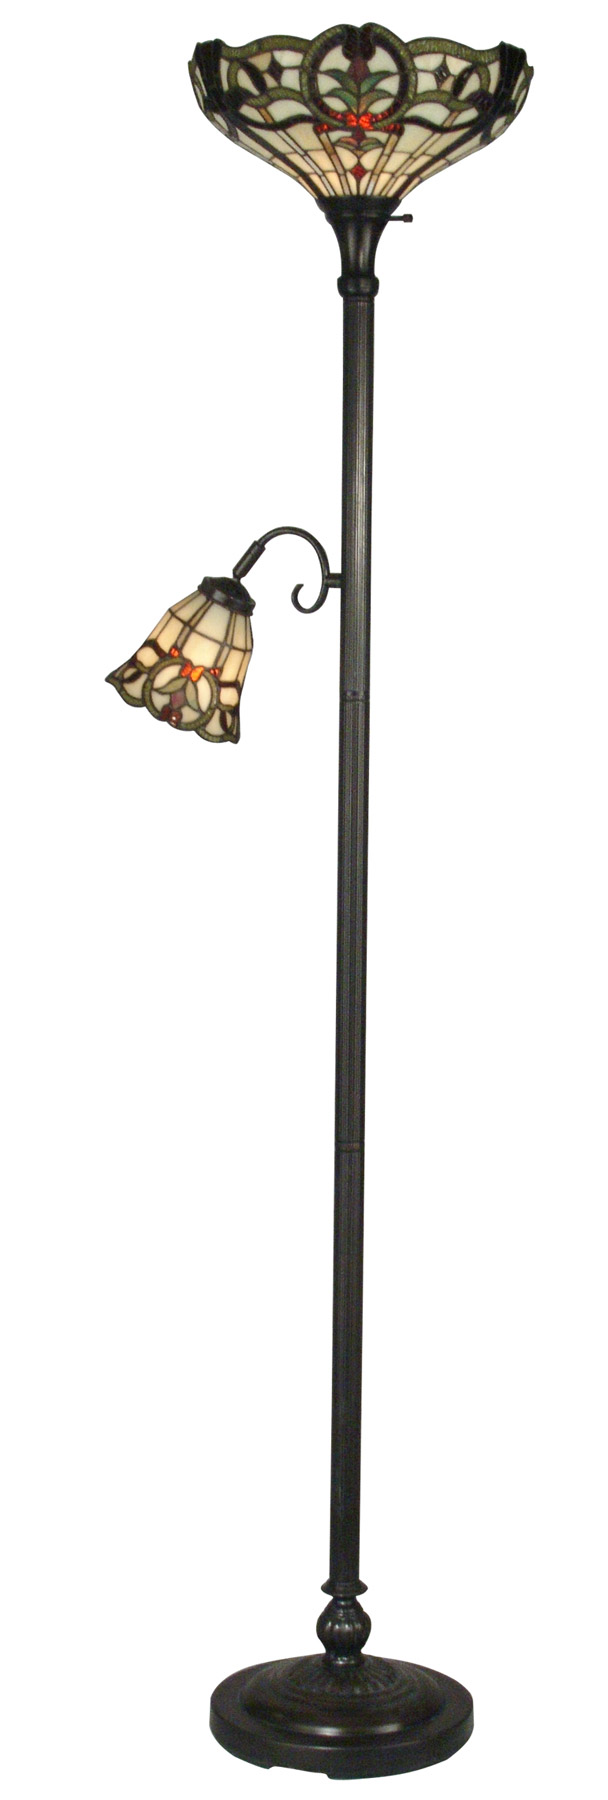 home lamps floor lamps torchiere dale tiffany tr10022. Black Bedroom Furniture Sets. Home Design Ideas